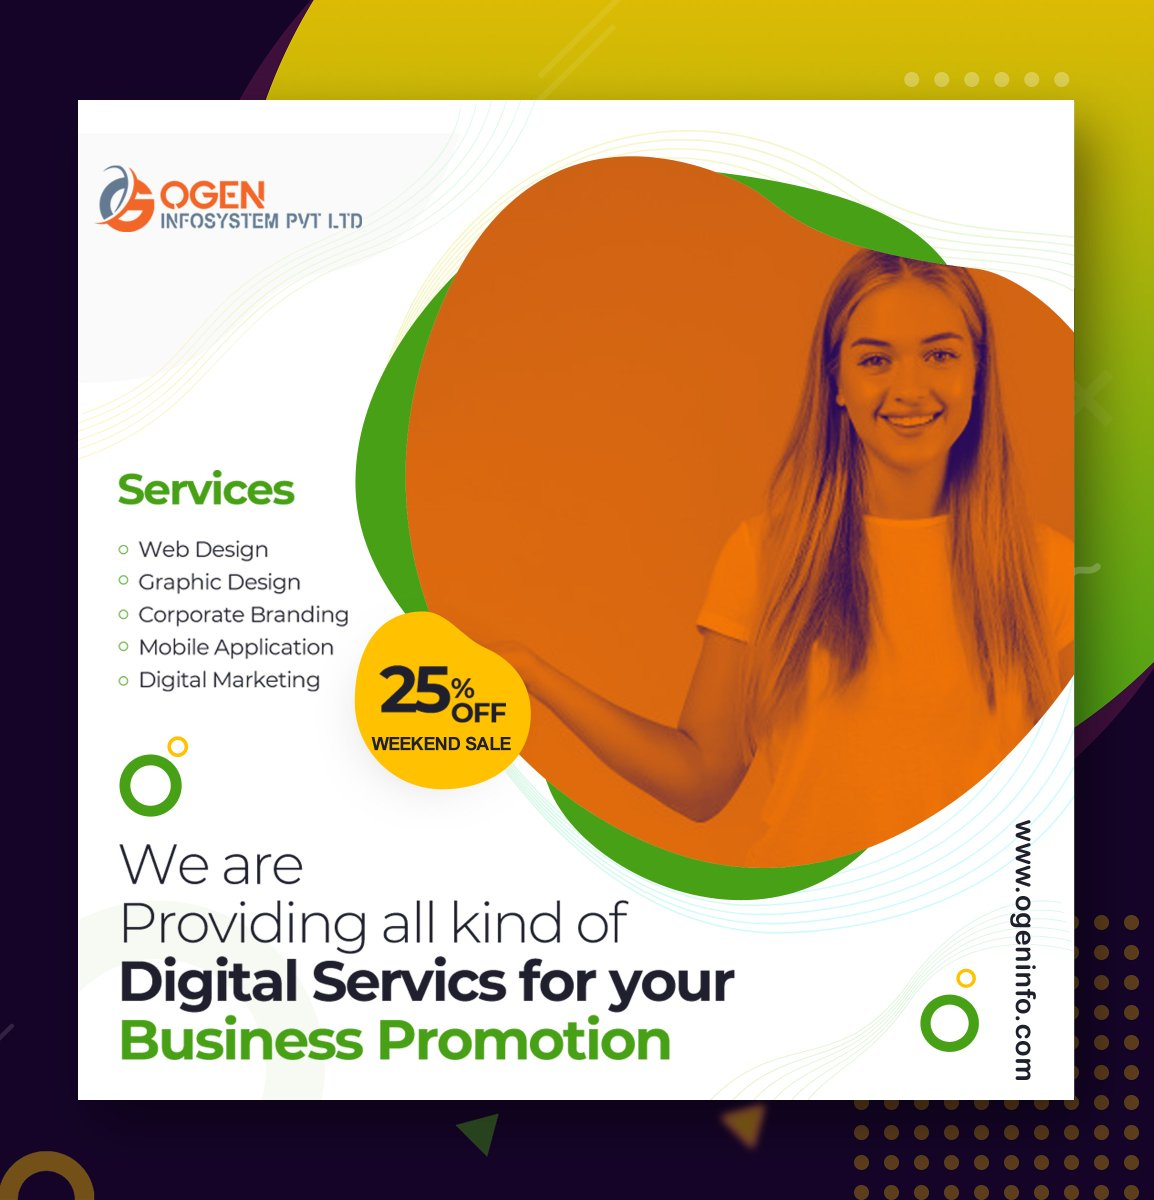 👉 Weekend Special - 25% OFF on all our Digital Services valid Till 24th Mid Night. Get your Business Fly High with Digital Parachute.  Call Now : +91 9654939970 https://t.co/wFnSEM4lP8 info@ogeninfo.com  #smoservices #digitalmarketing #websitedesign  #marketing #leadgeneration https://t.co/eW6avq1OjA